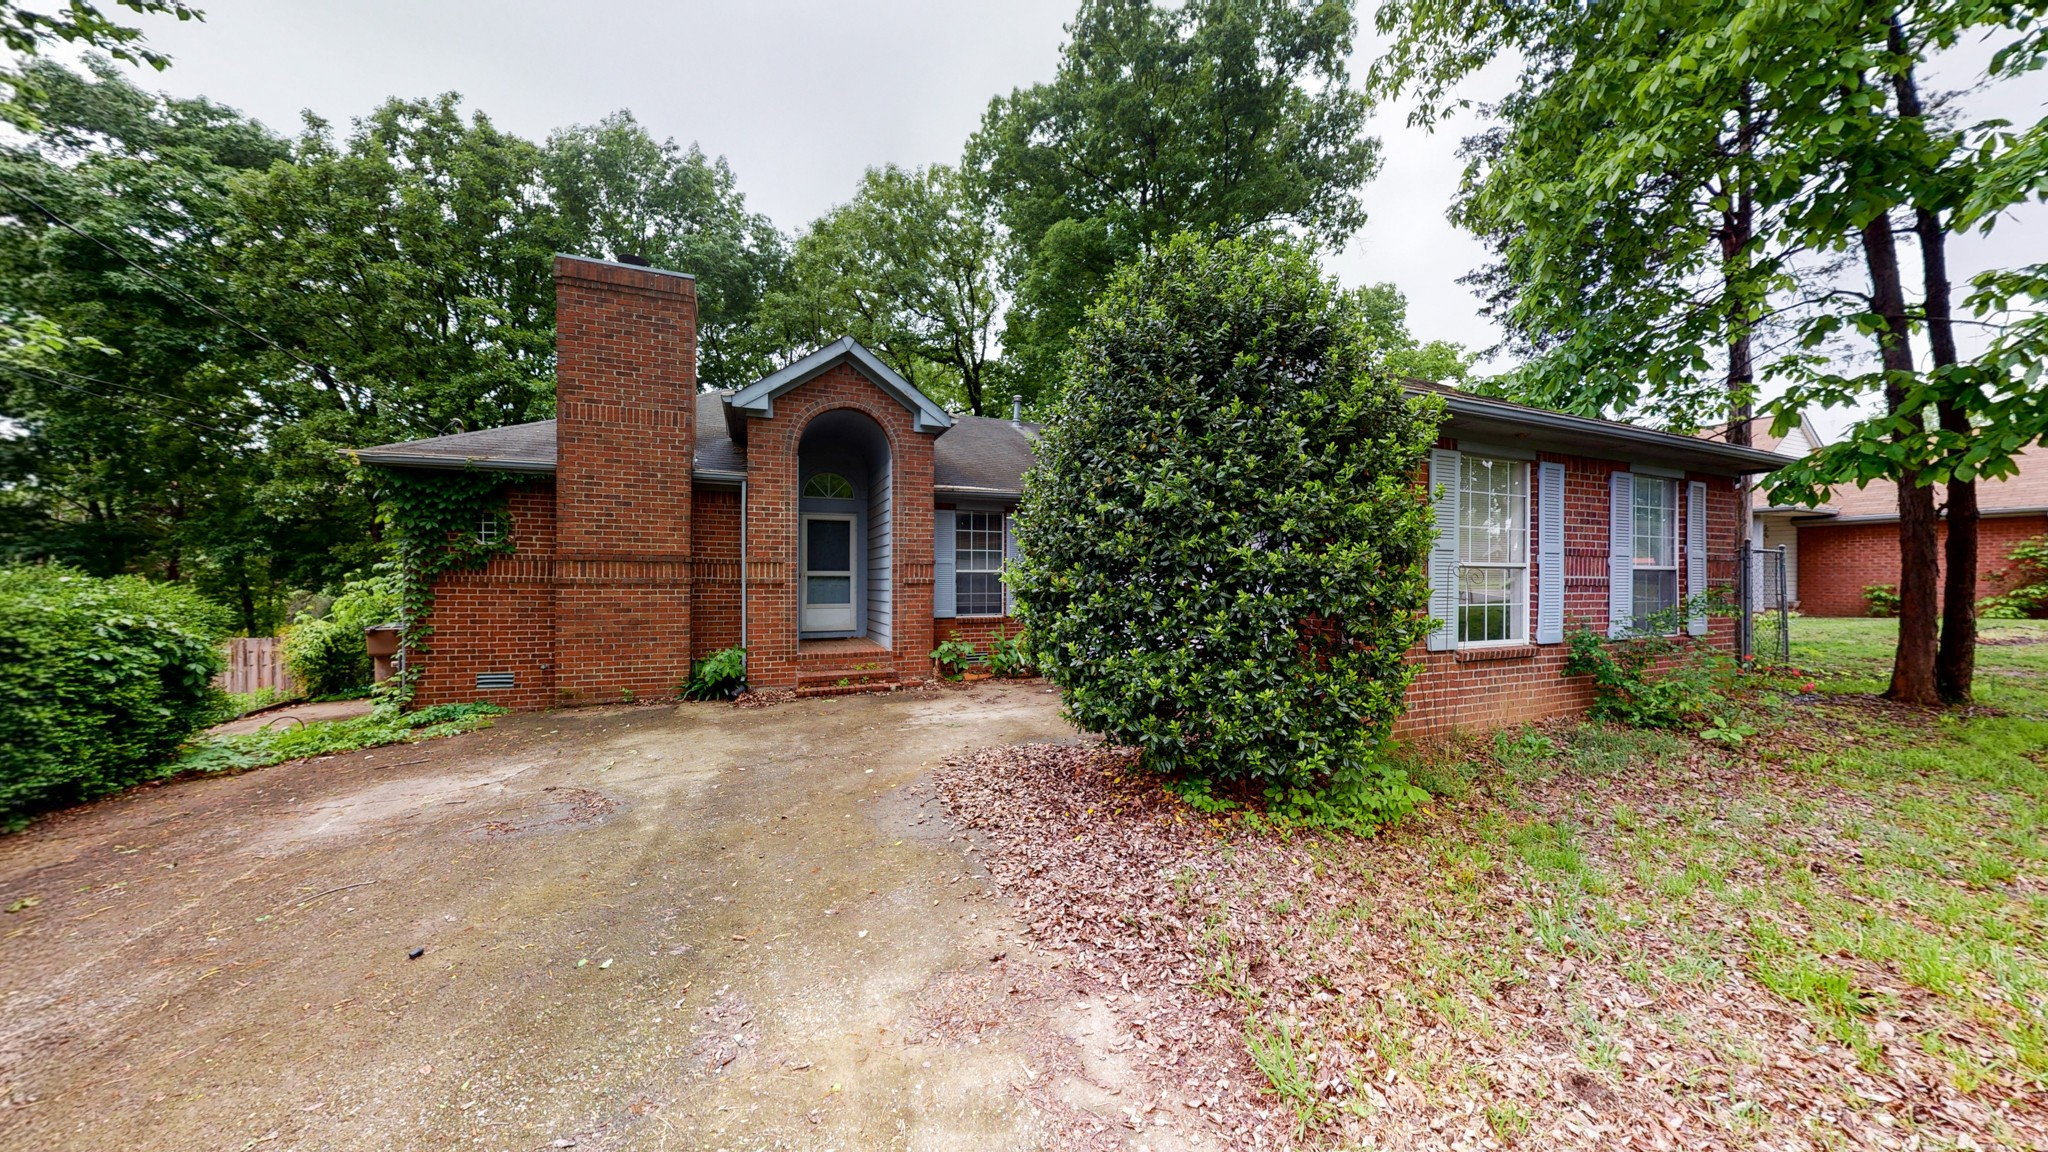 3804 Round Rock Dr Property Photo - Antioch, TN real estate listing